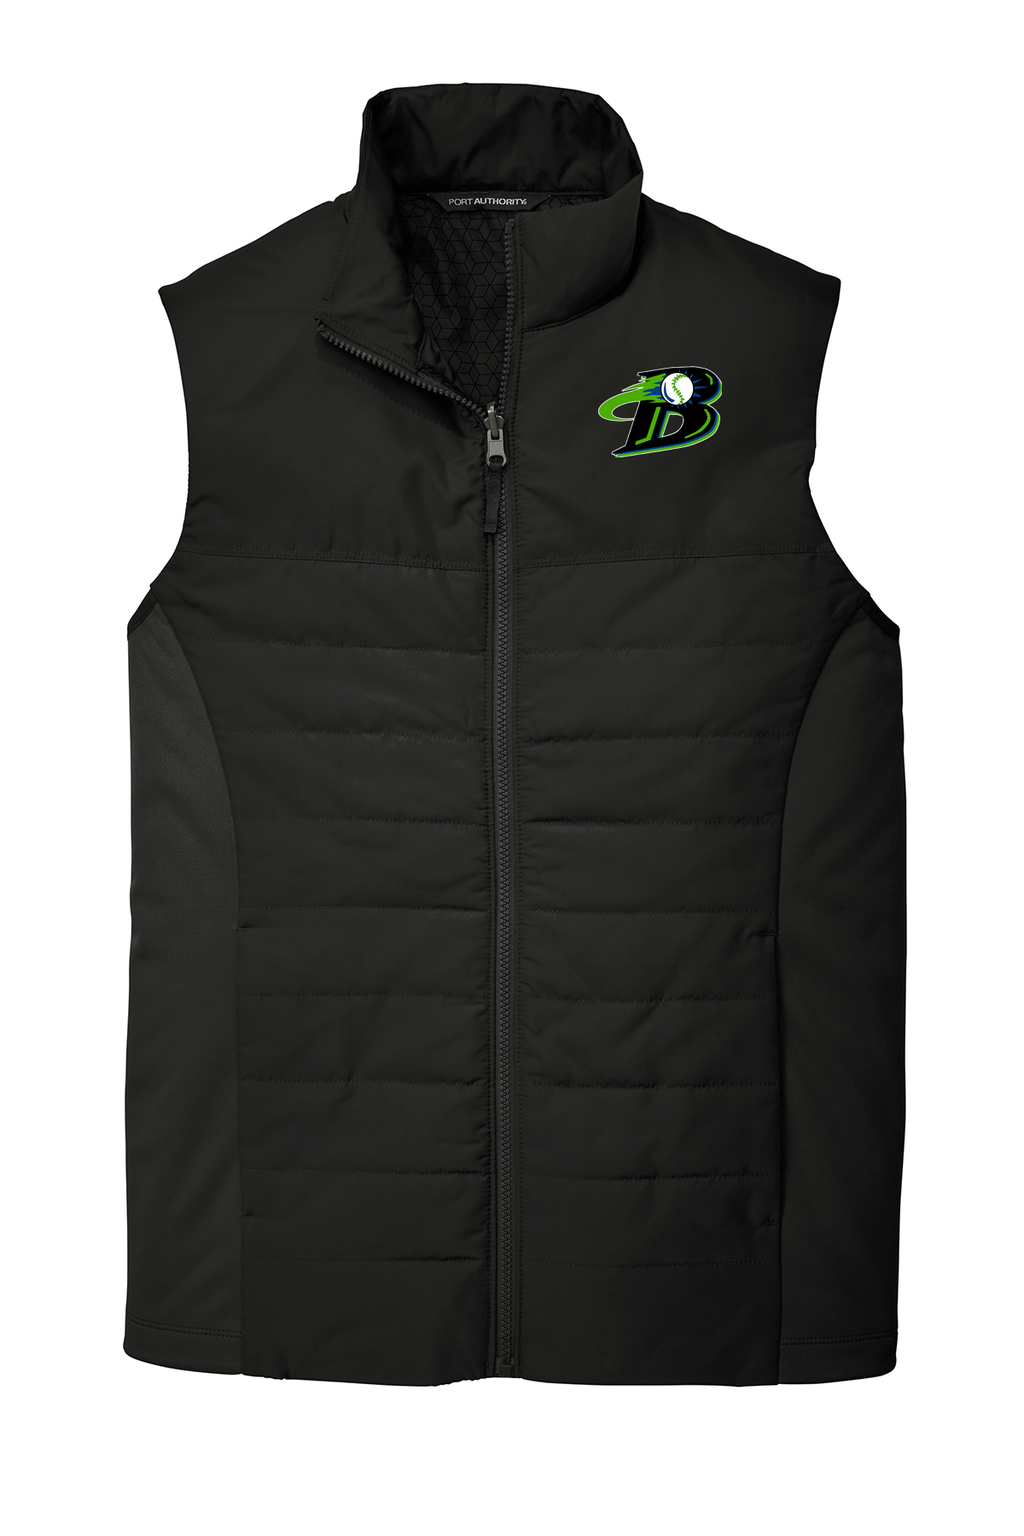 Michigan Blast Elite Baseball Vest